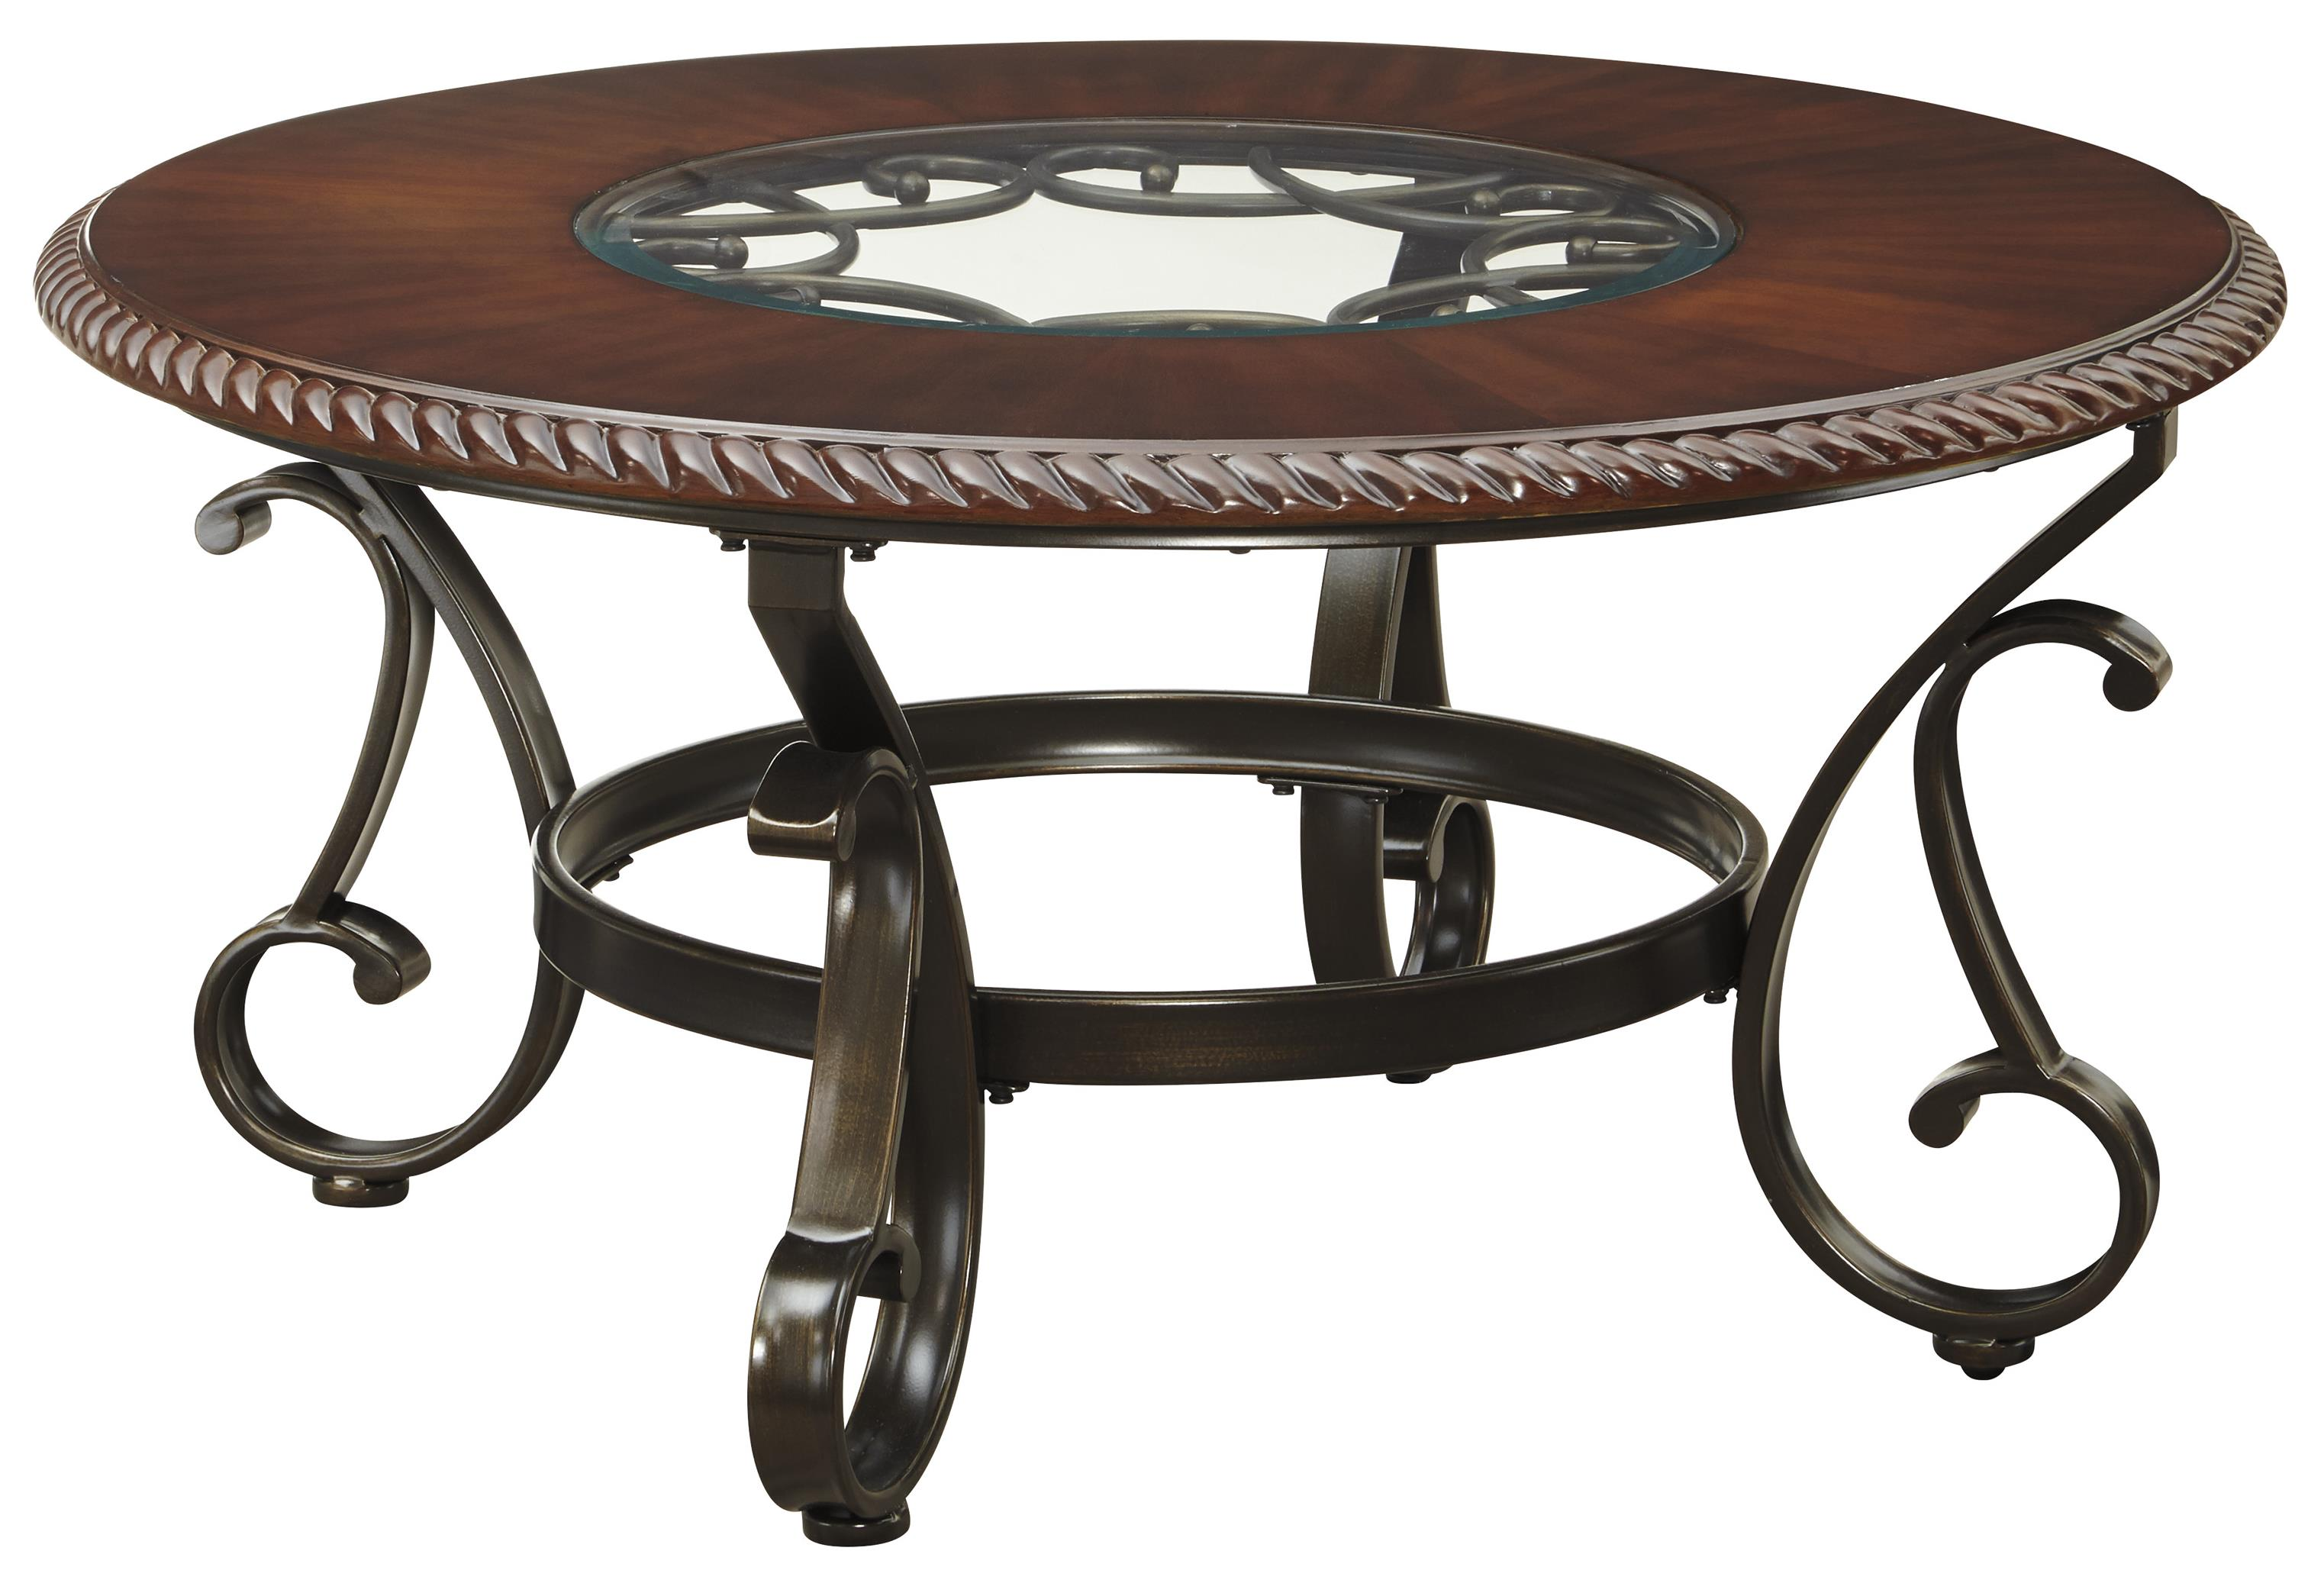 Ashley signature design gambrey t626 8 round cocktail table with glass insert top and metal base Metal glass top coffee table